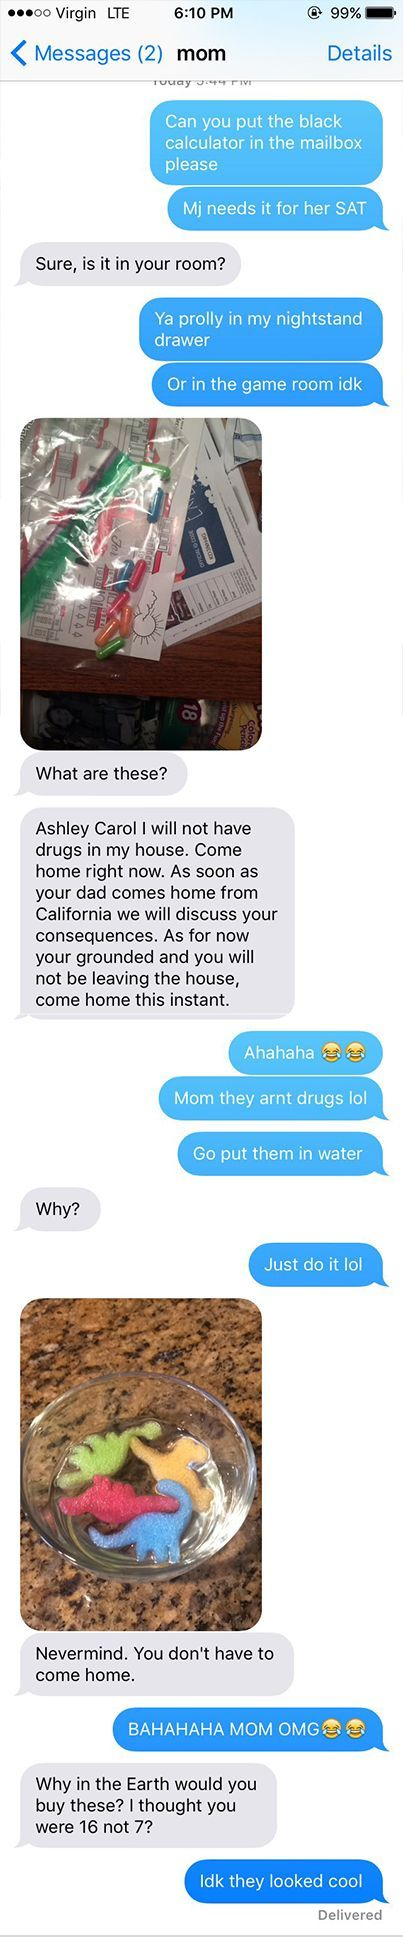 cool 'You're grounded!': Mom thinks she found drugs in teen's room, girl's explanation is hilarious by http://dezdemon-humoraddiction.space/parenting-humor/youre-grounded-mom-thinks-she-found-drugs-in-teens-room-girls-explanation-is-hilarious/